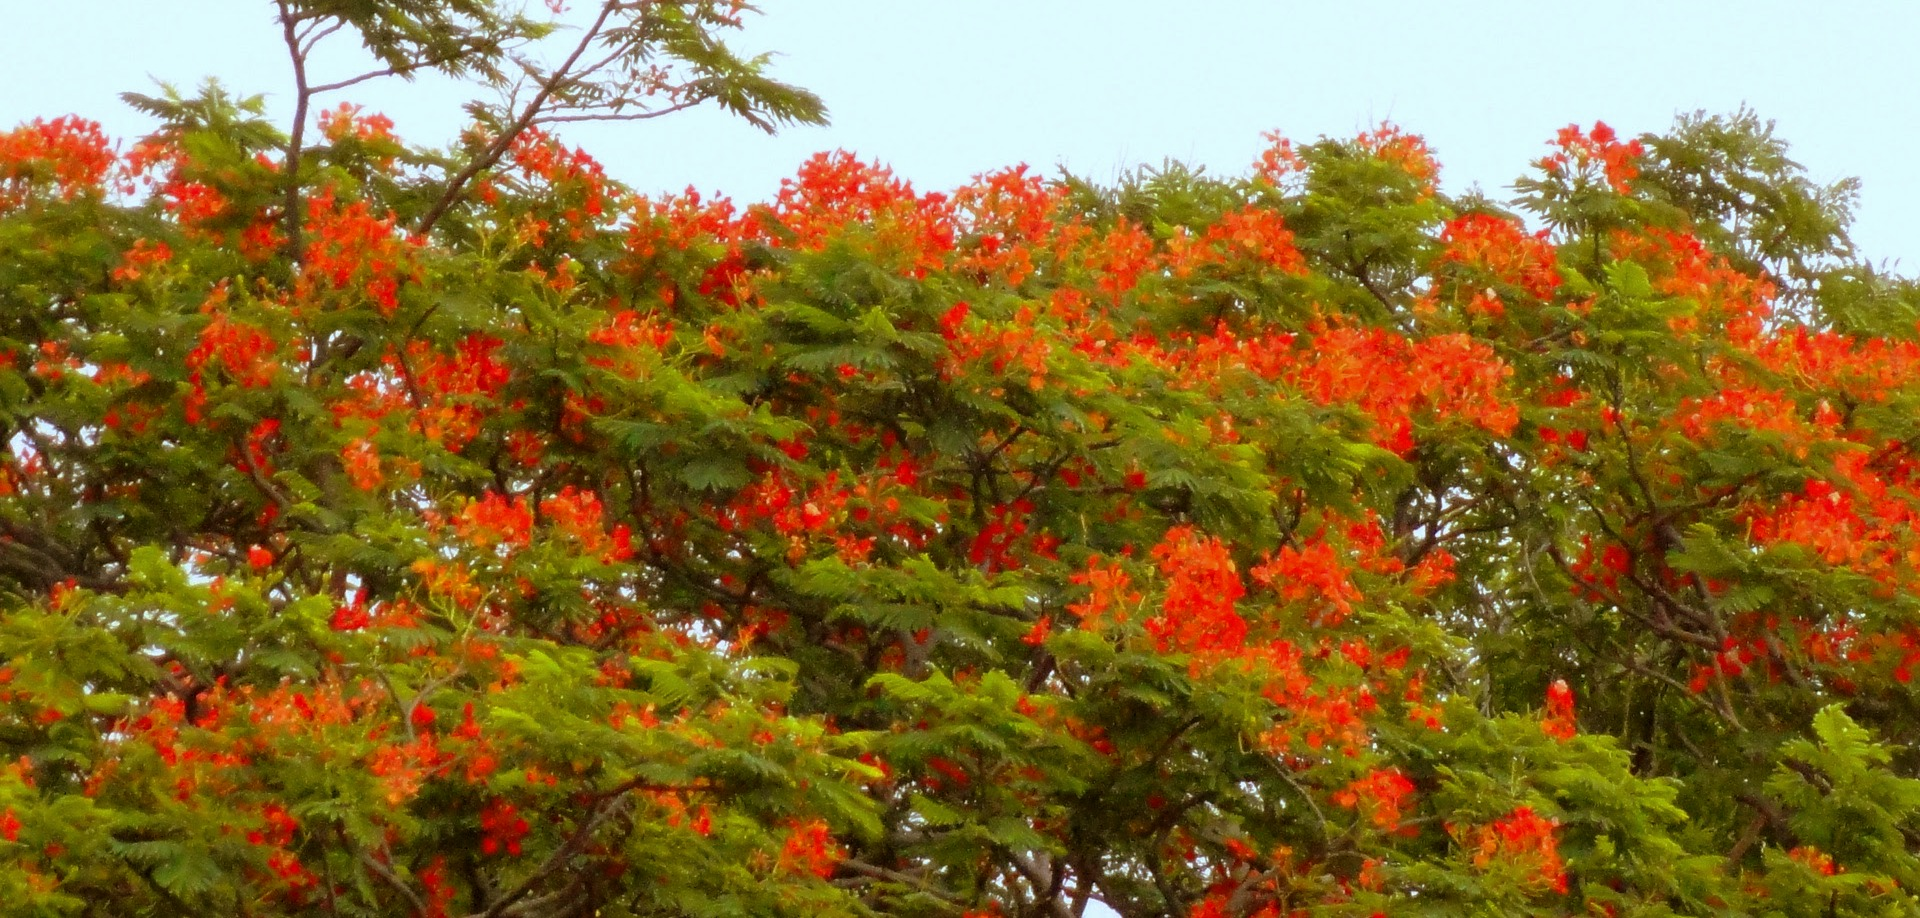 File:Colorful flower of Butea (Palash).jpg - Wikimedia Commons Palash Flowers Images